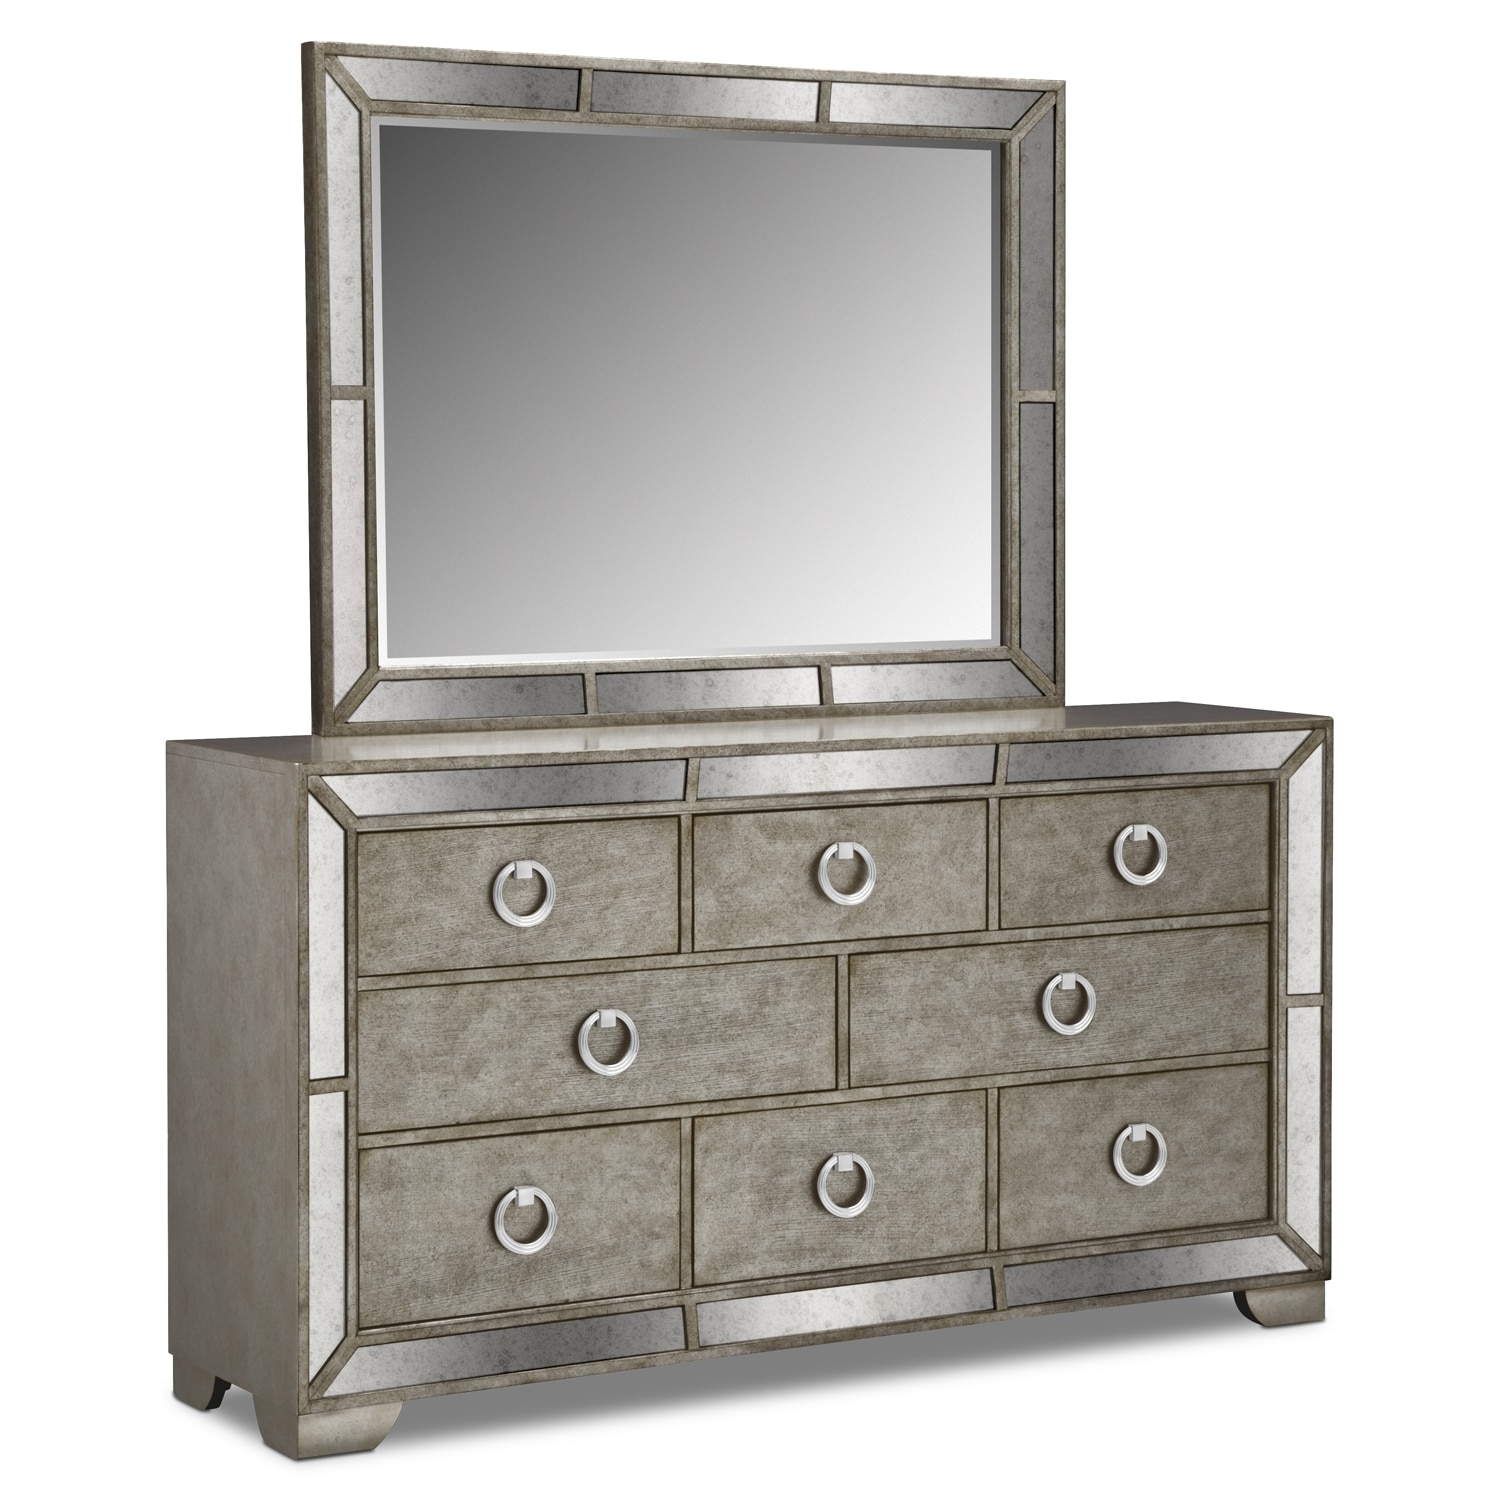 Angelina Dresser and Mirror Metallic Value City Furniture : 289616 from www.valuecityfurniture.com size 1500 x 1500 jpeg 290kB